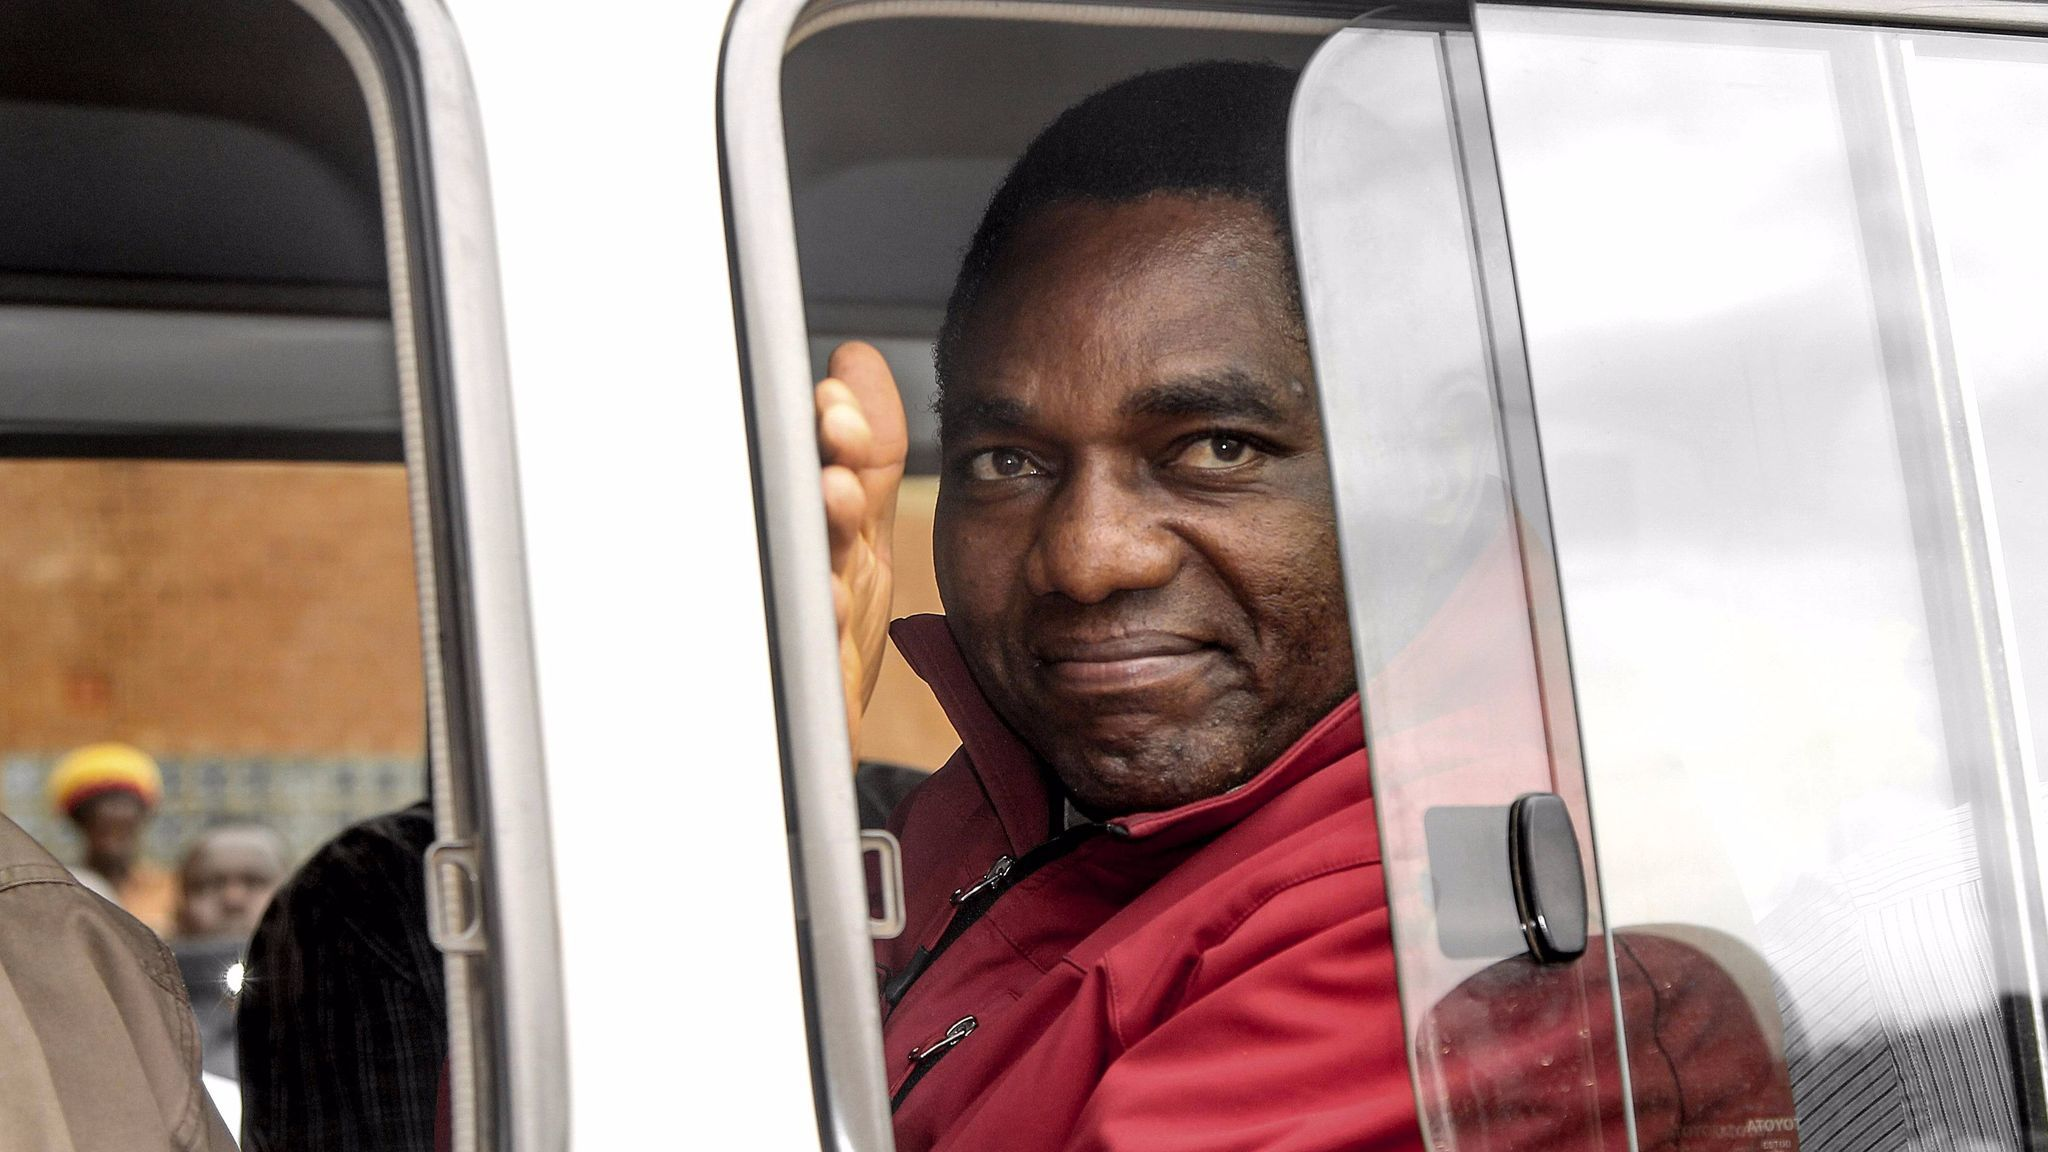 Jailed Zambian opposition leader Hakainde Hichilema, facing treason charges and possibly the death penalty, waves to supporters from a police van as he leaves a court hearing April 18.